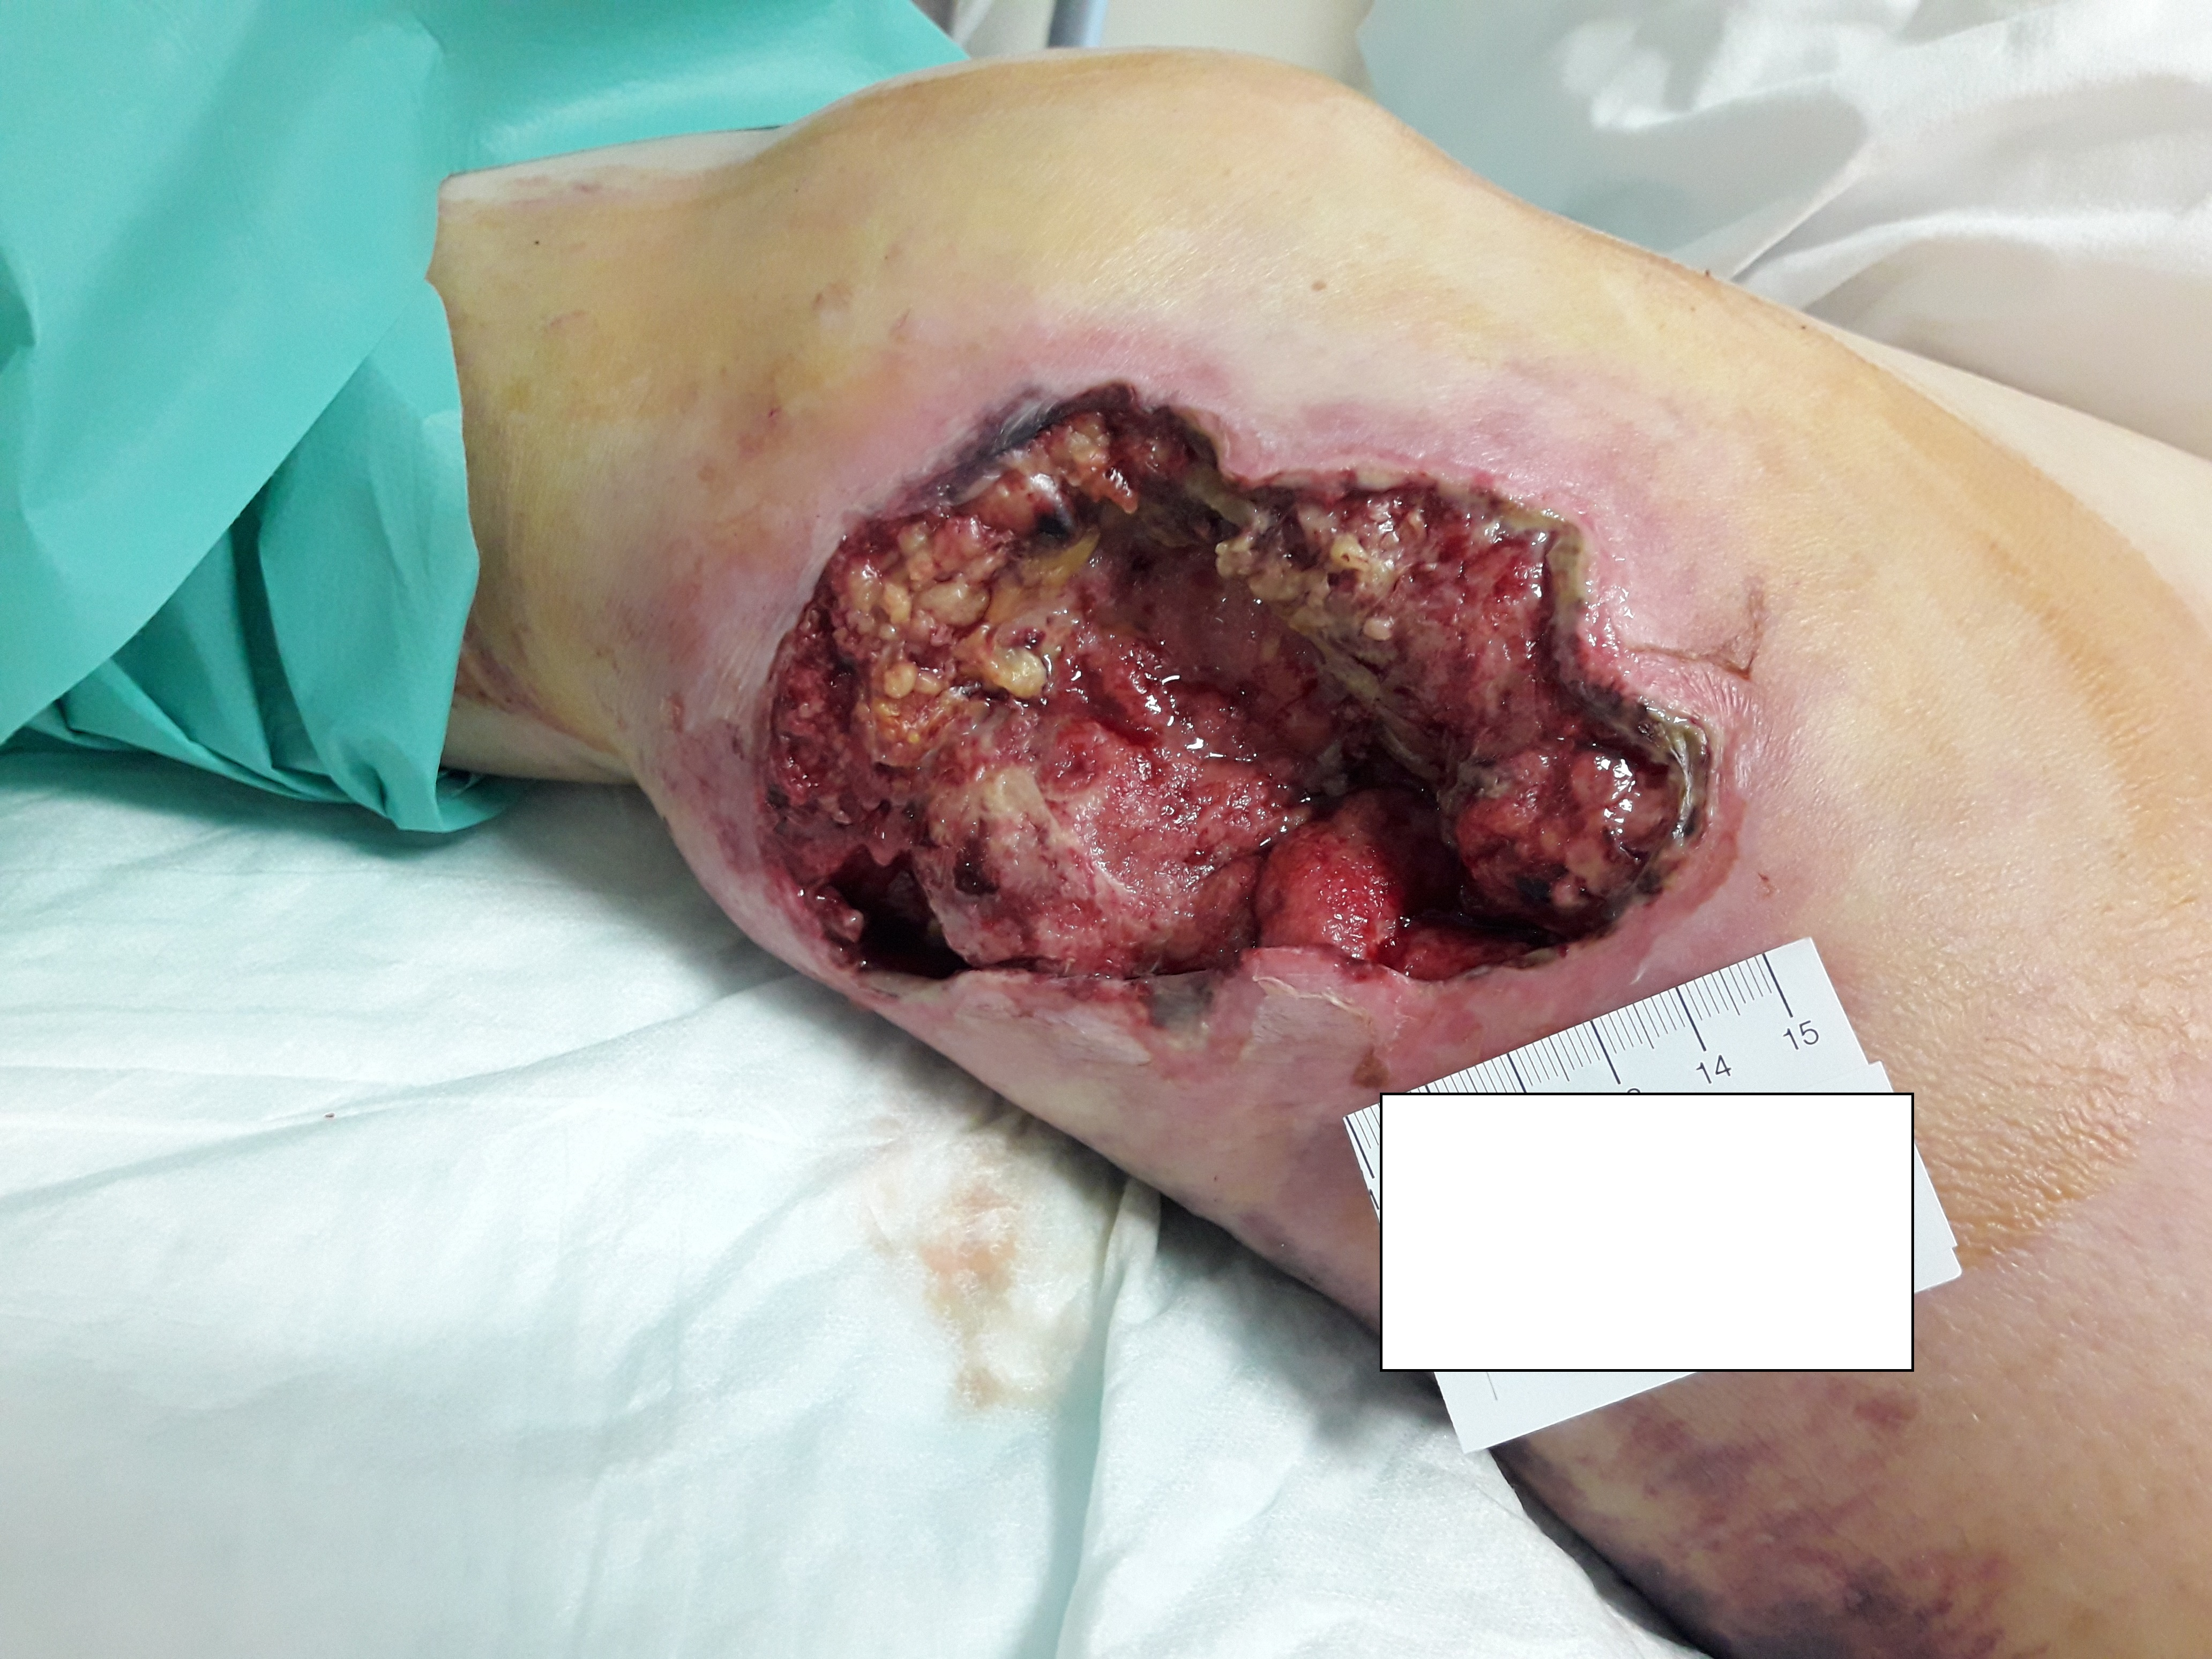 Figure 1: Wound bed at the first assessment (on February 8th 2019)